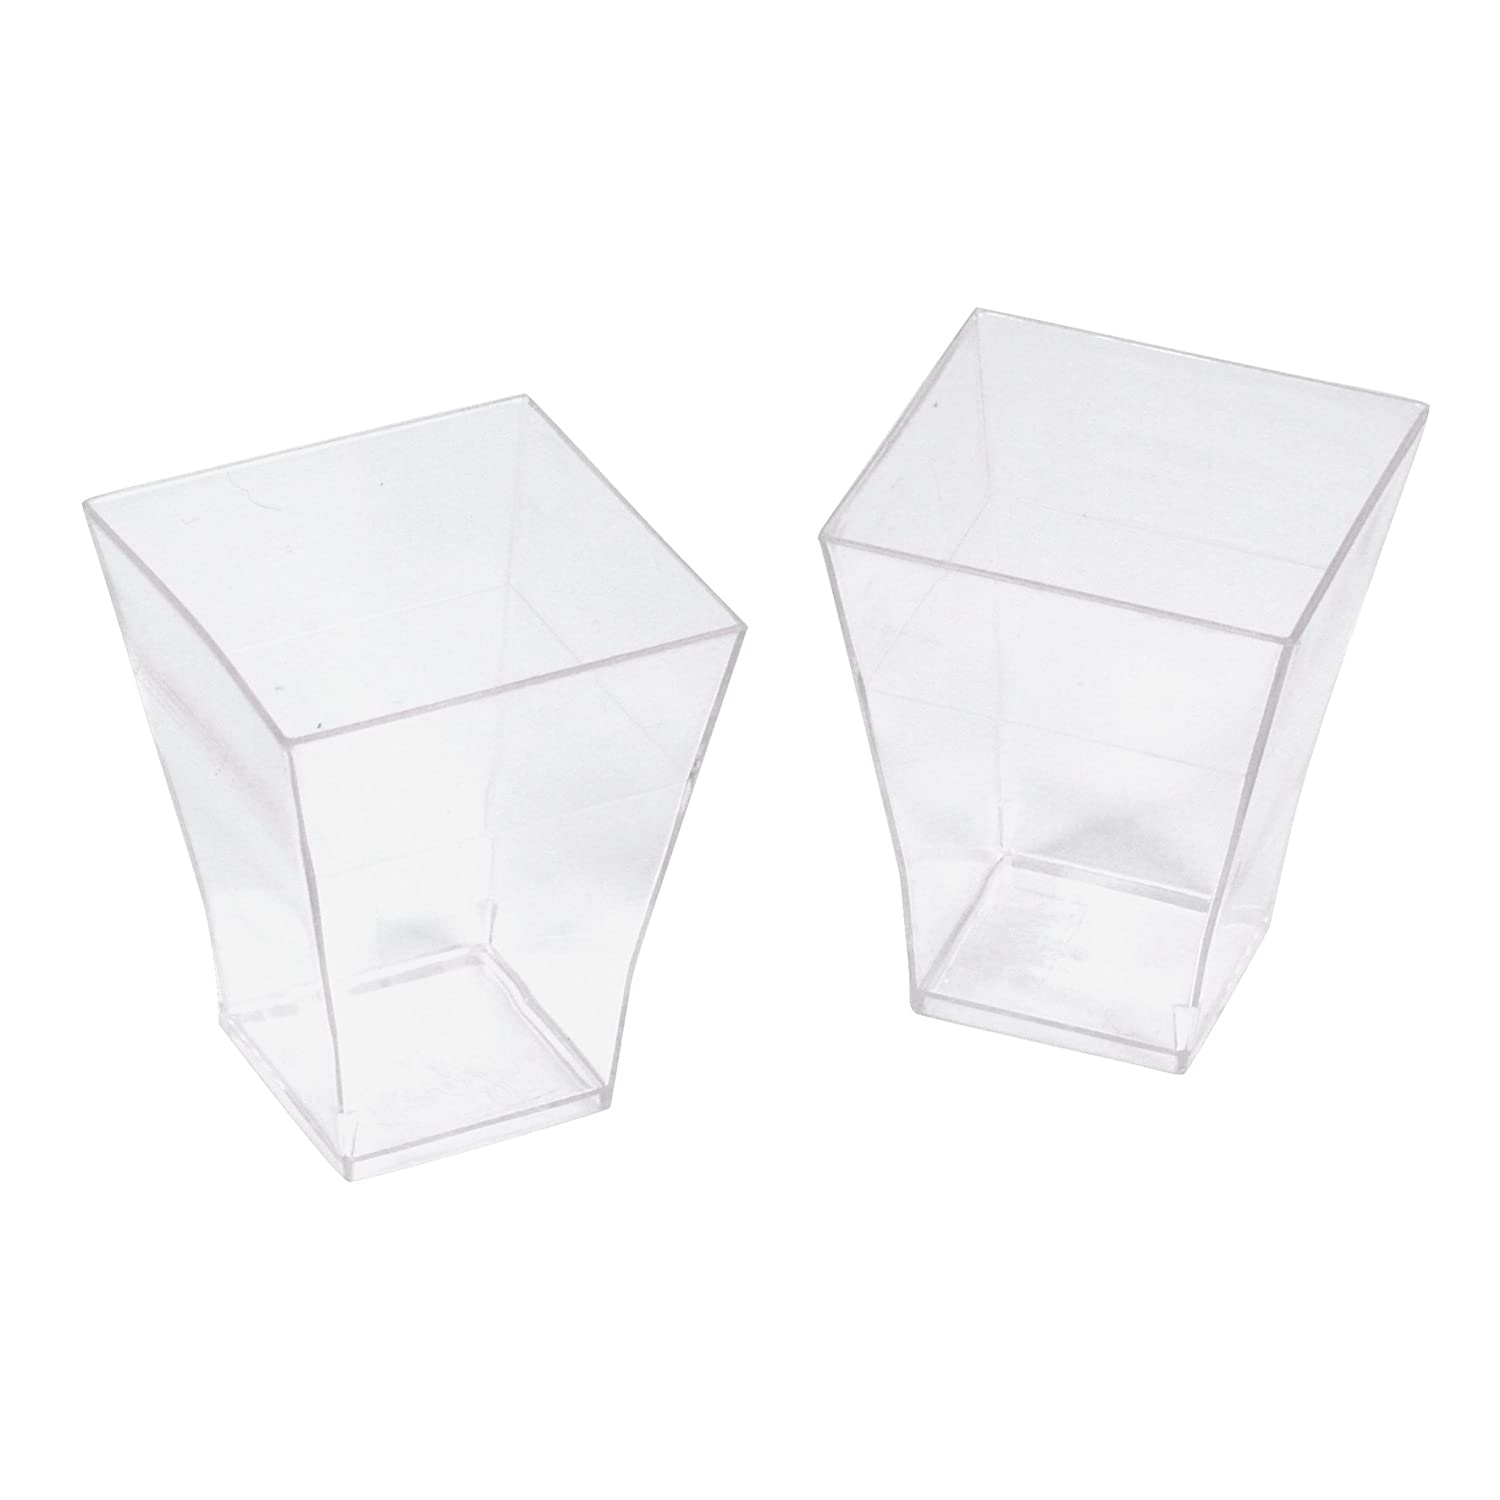 Delys-By-Vercal 507679 Set of 12 Plastic Verrines, 5 x 5 x 4.5 cm